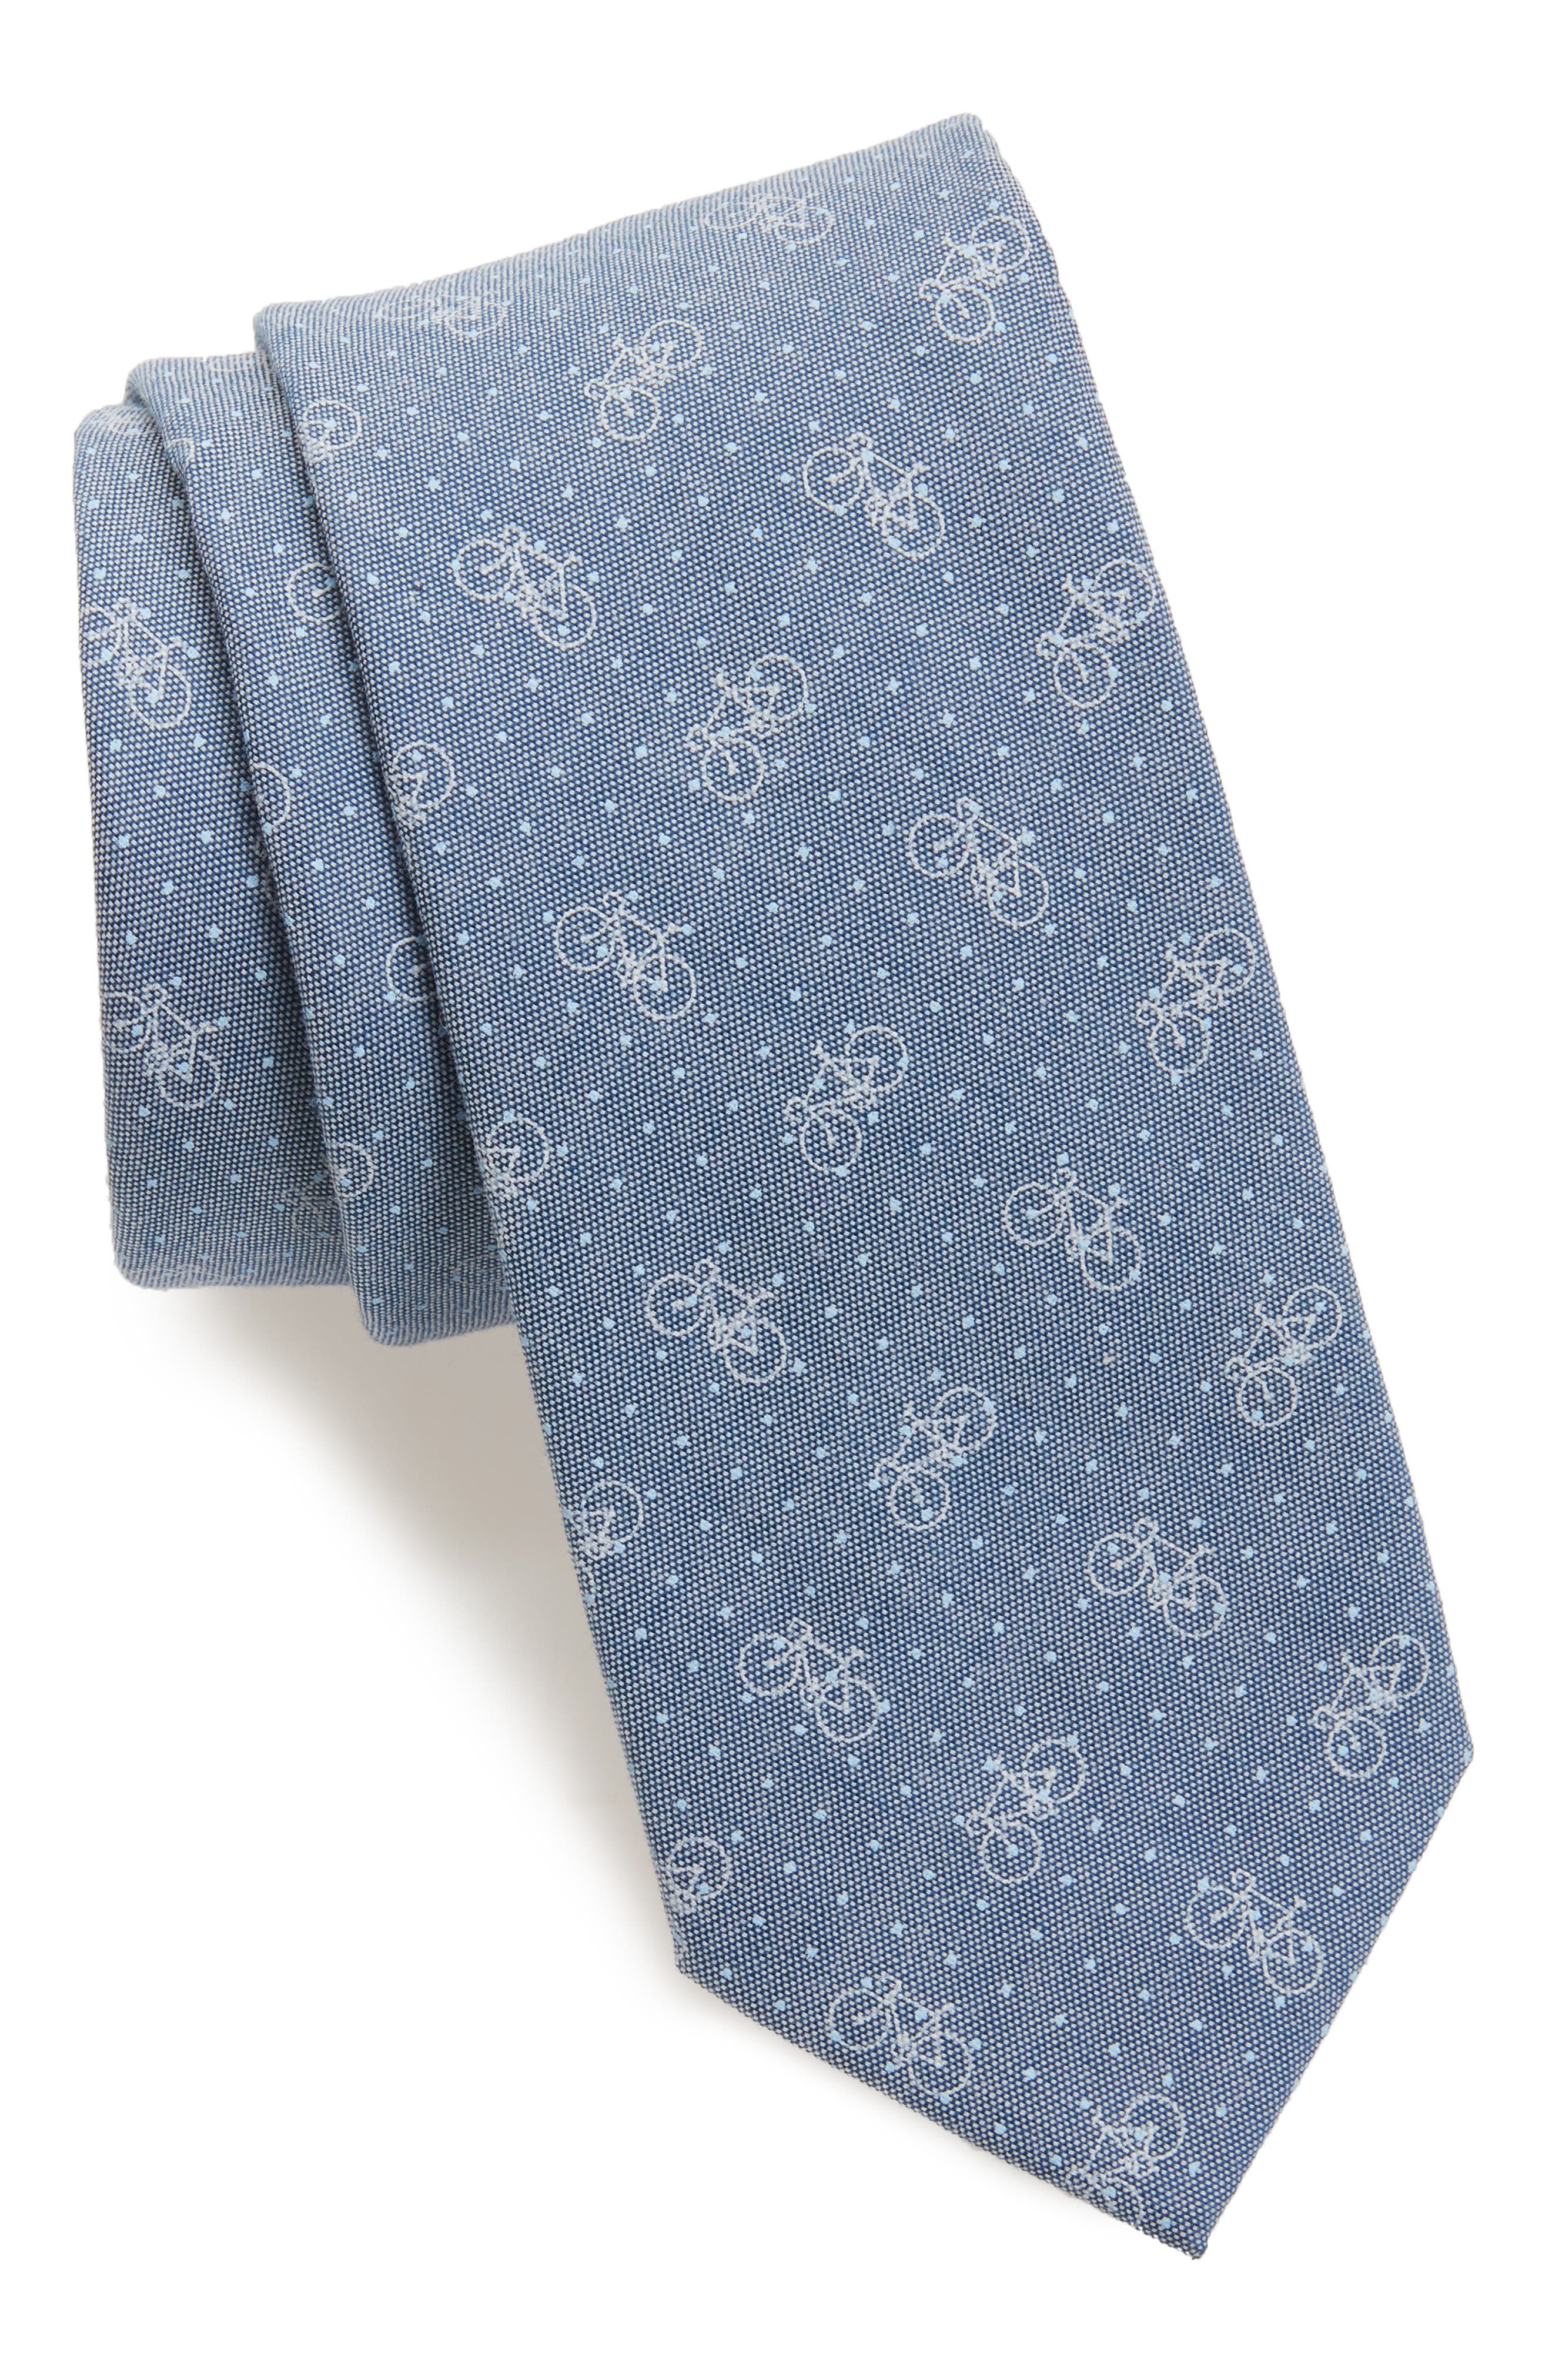 Bicycle & Dot Cotton Tie,                         Main,                         color, Blue